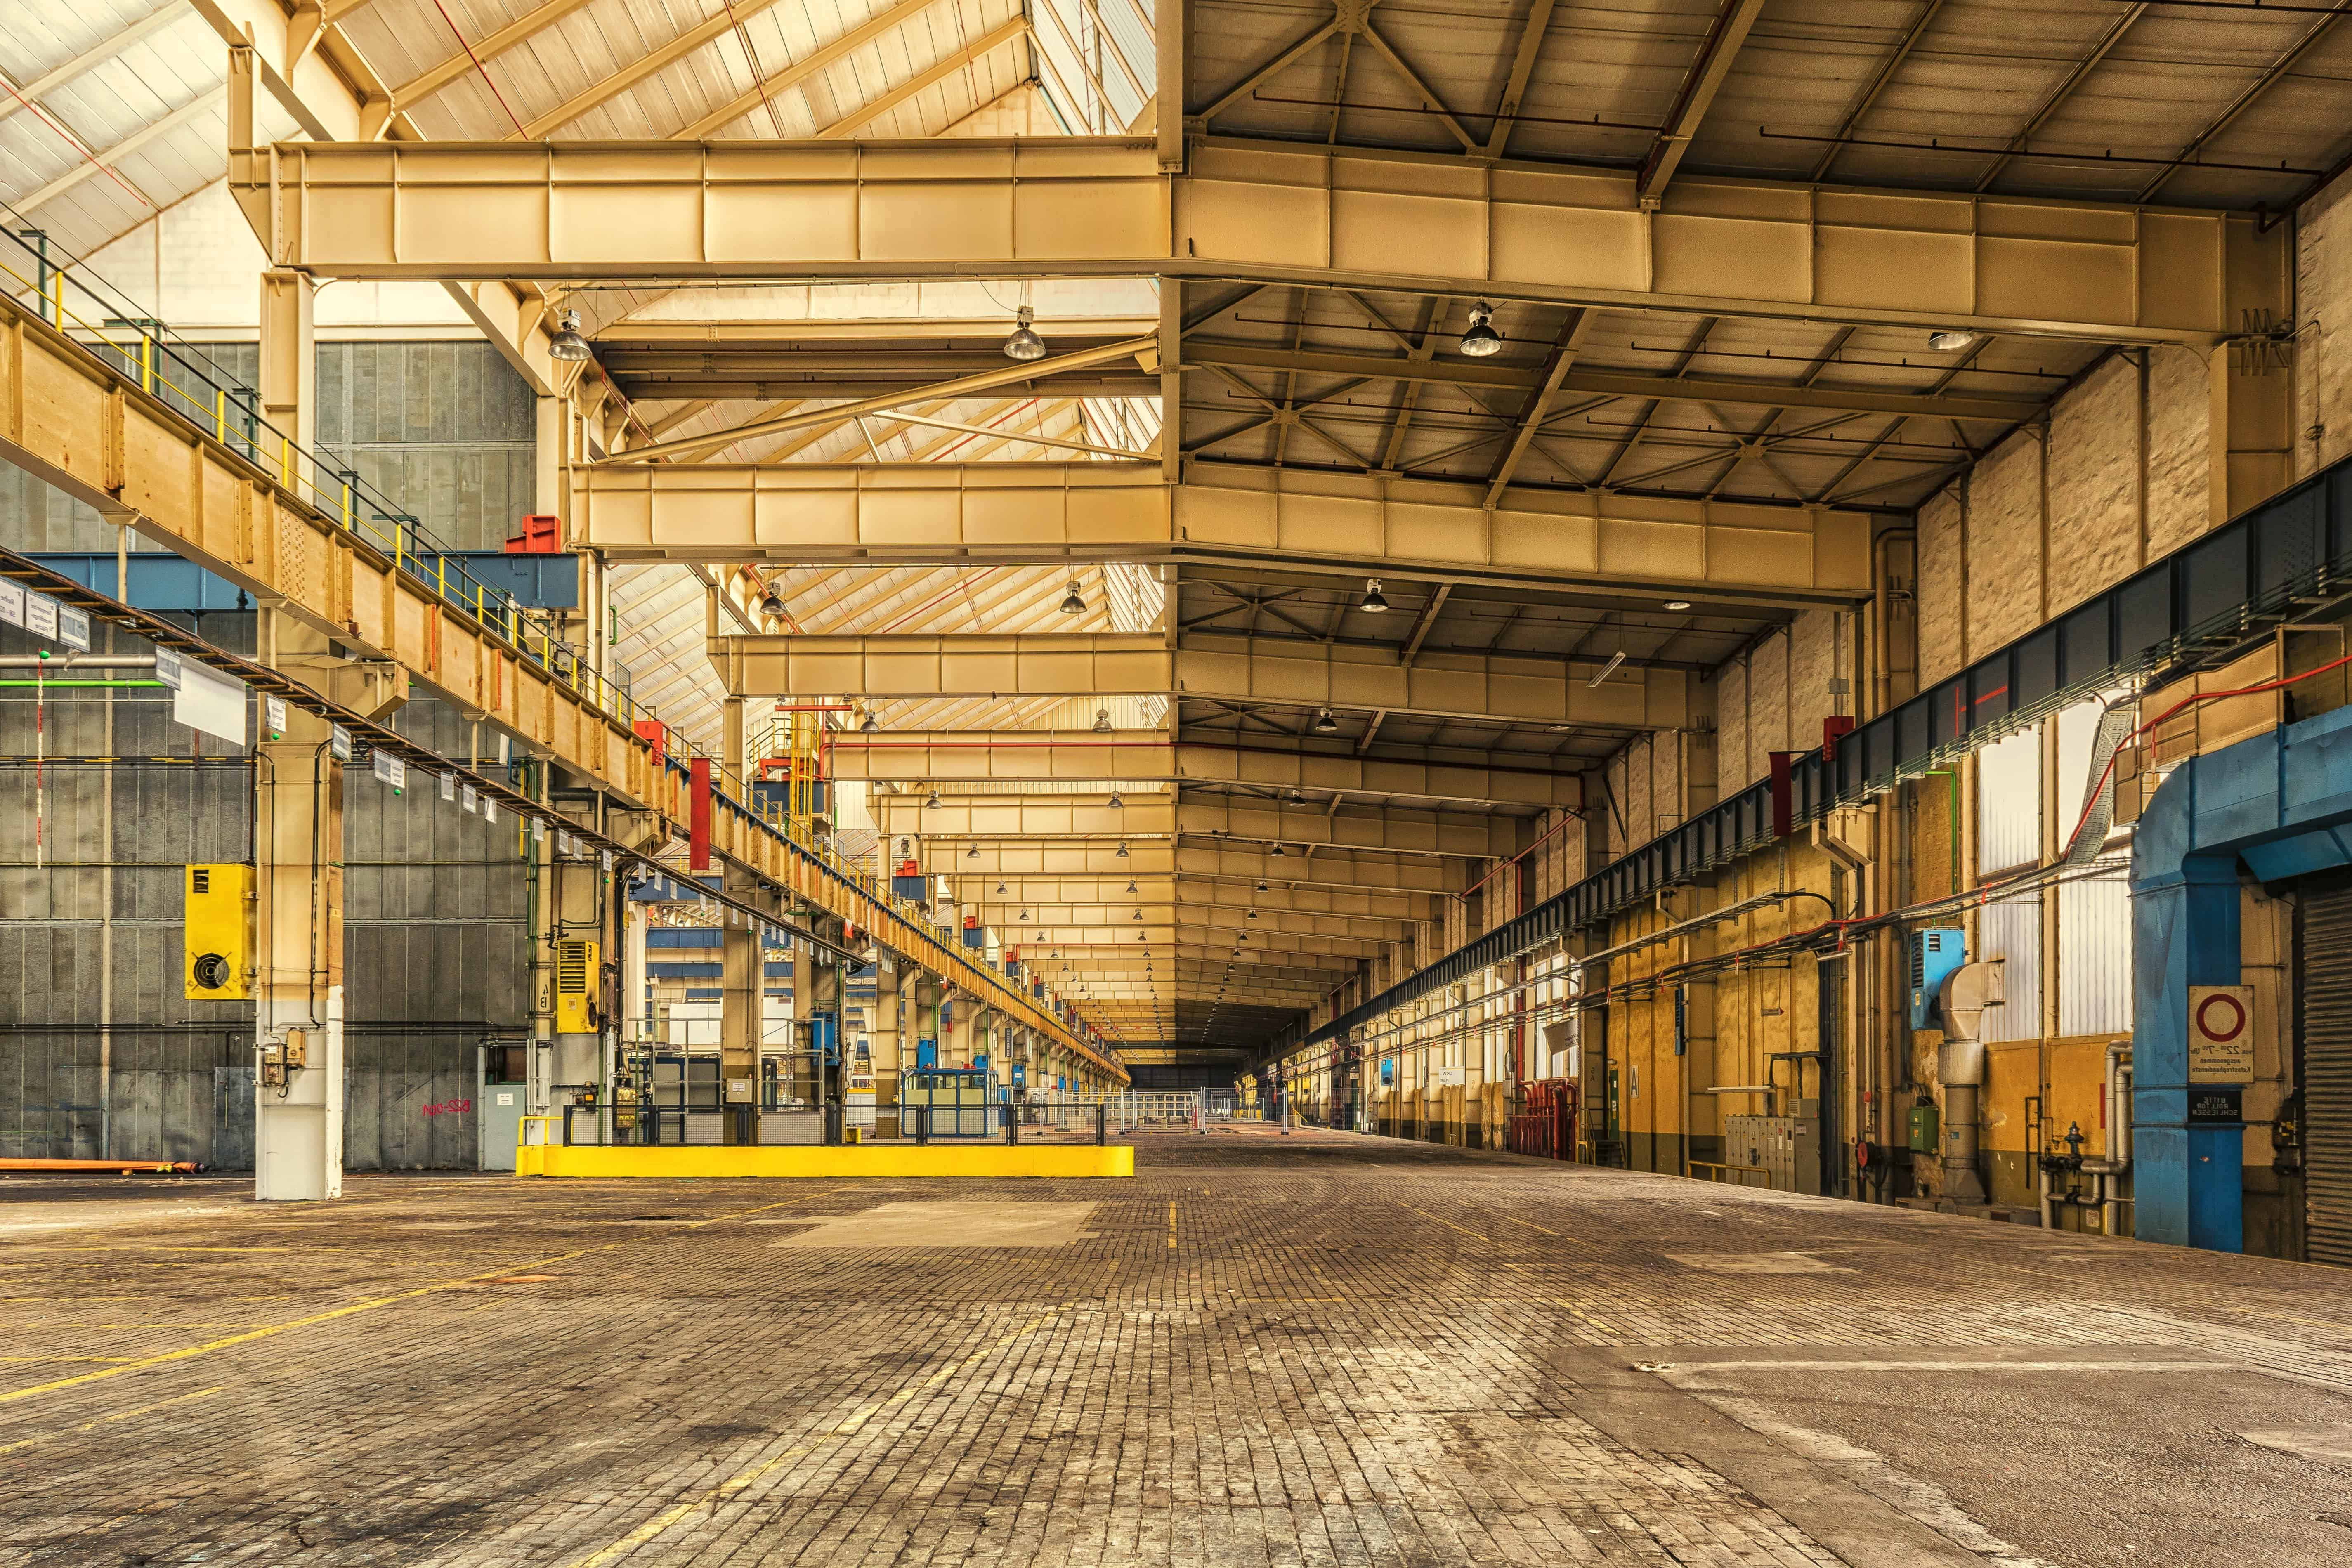 Free picture: warehouse, industry, construction, steel, architecture, indoor